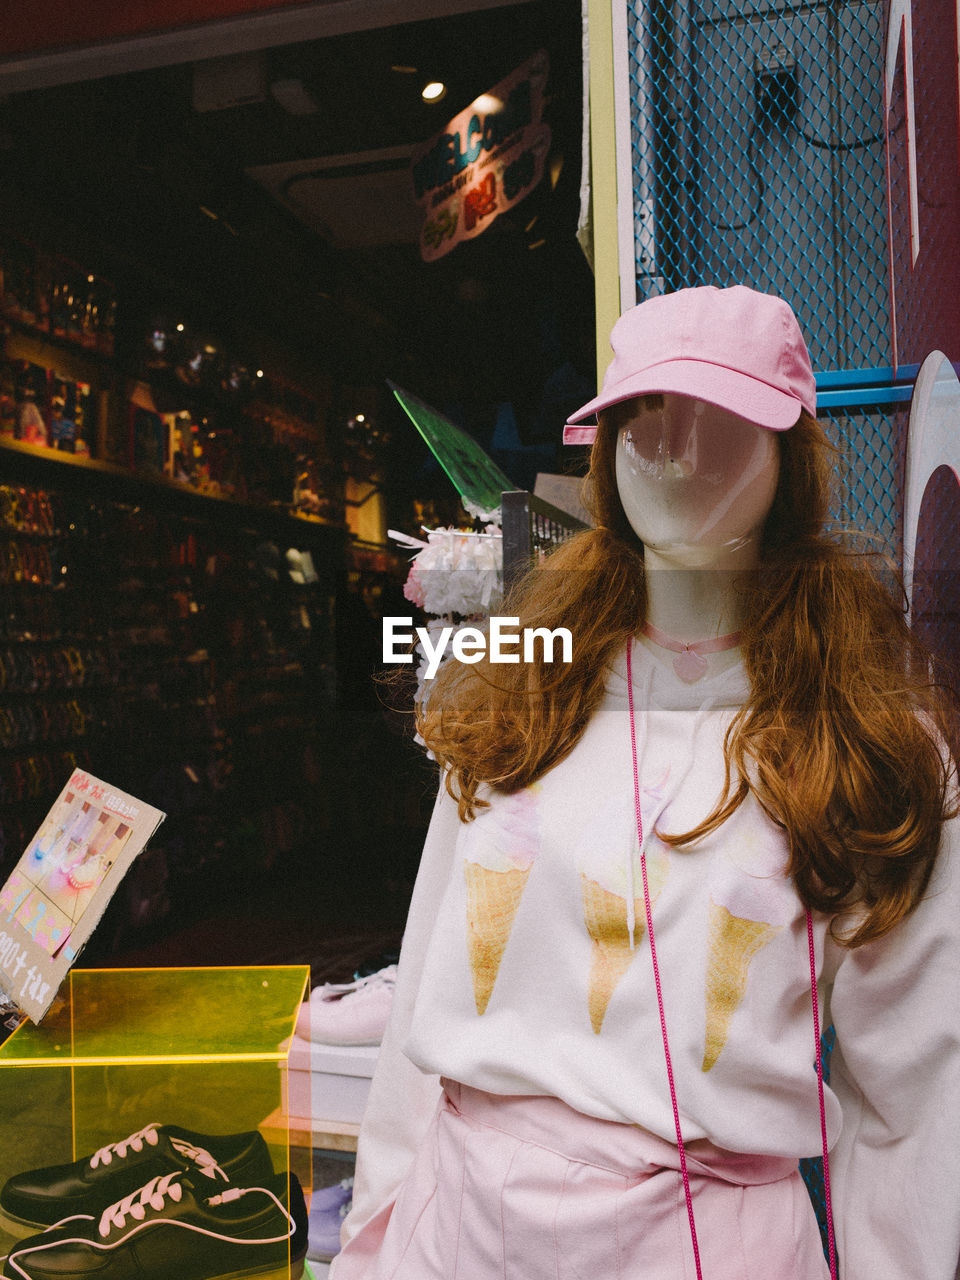 PORTRAIT OF WOMAN WITH HAT STANDING IN STORE AT MARKET